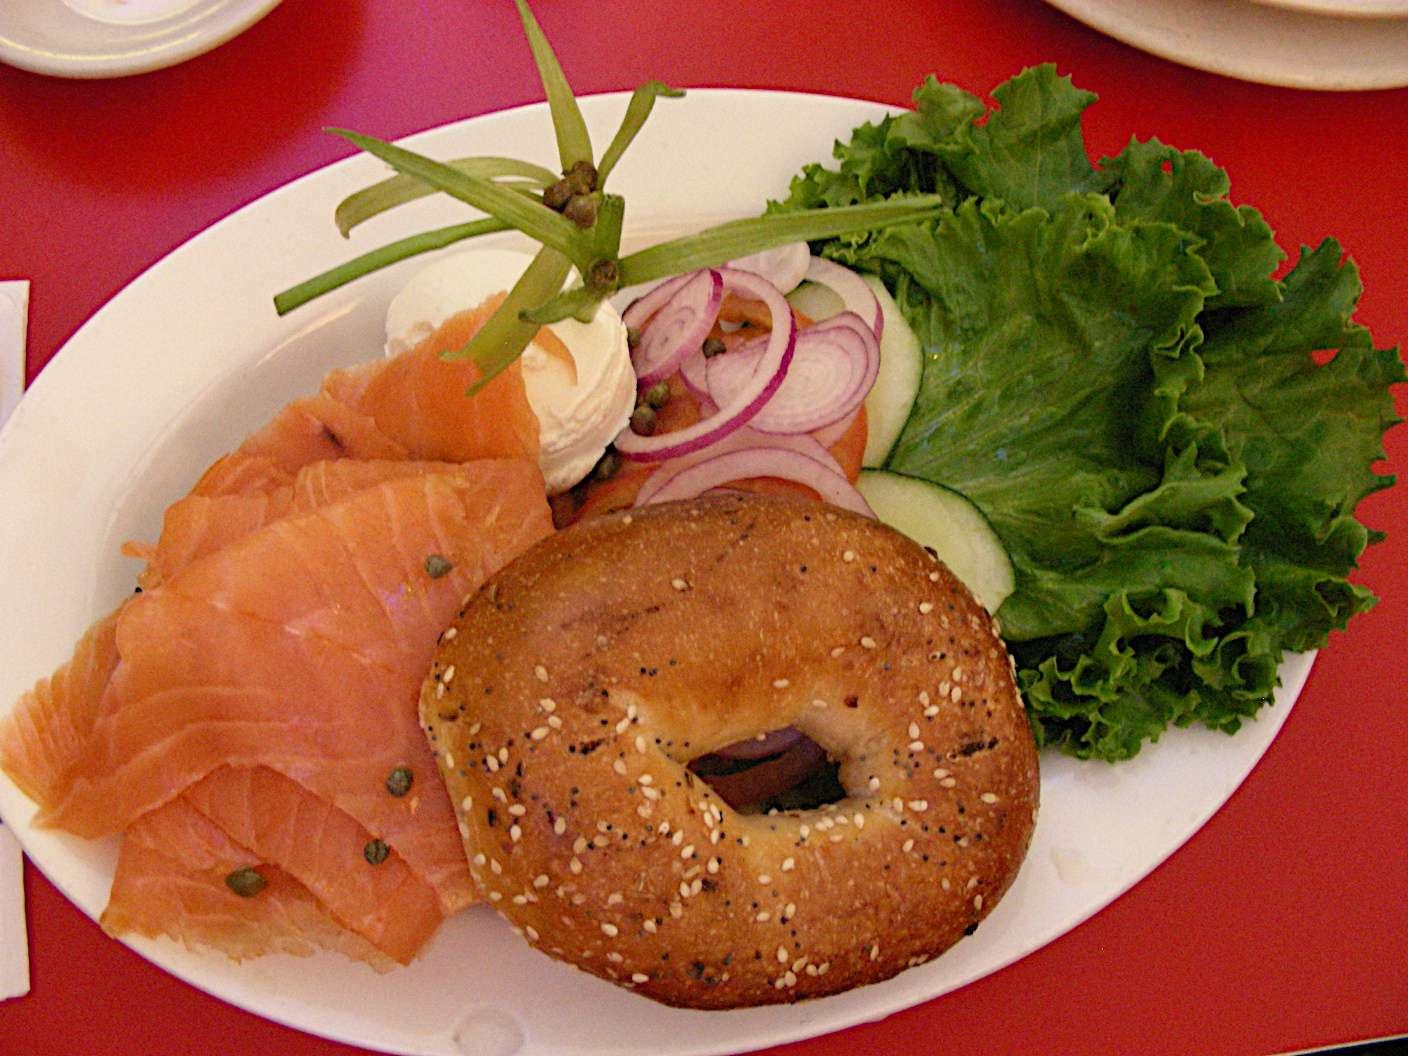 A New York must-eat: bagel, lox (cured salmon) and schmear (cream cheese)